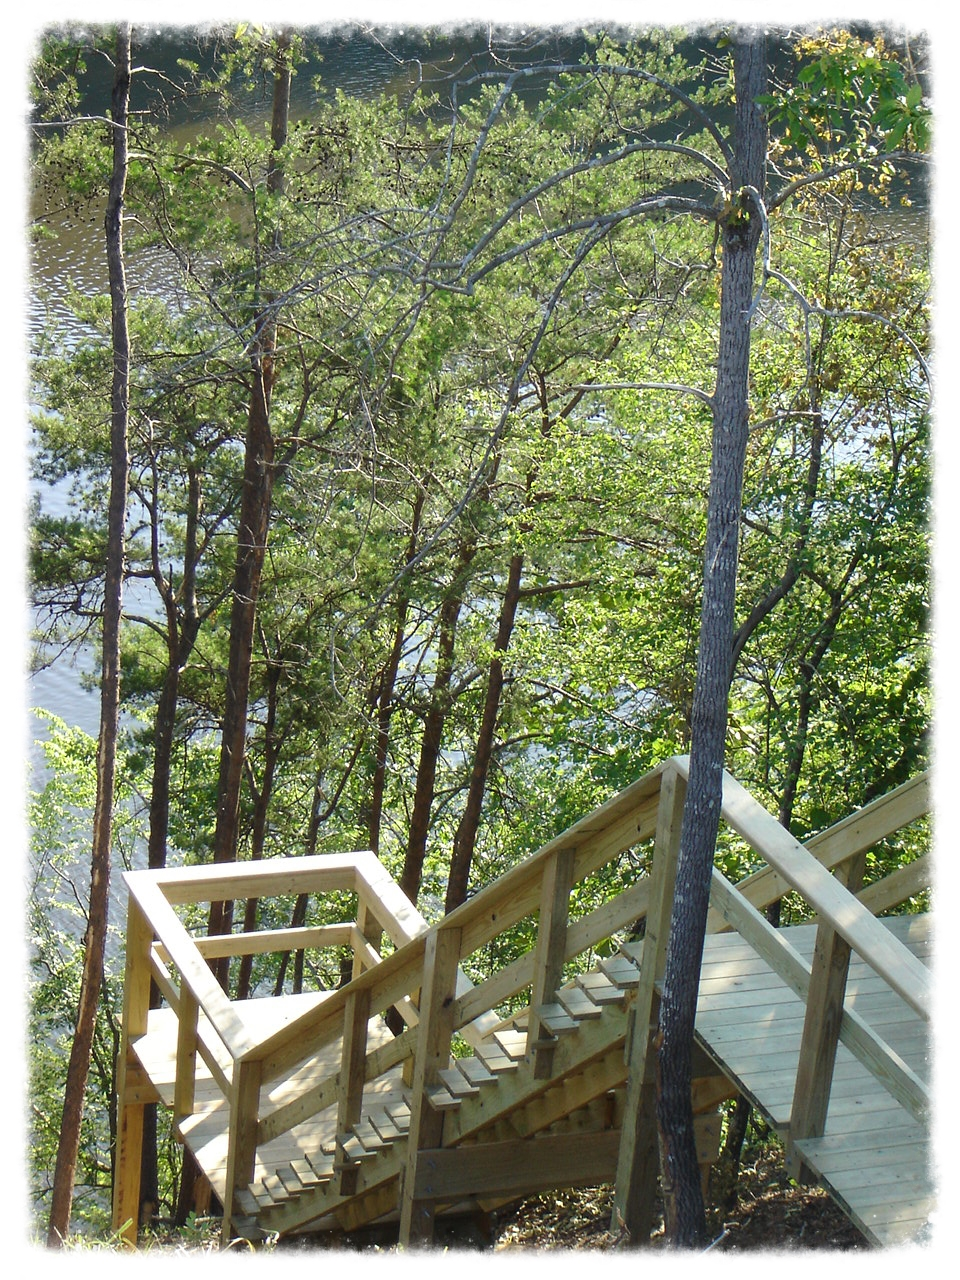 Wood Boardwalk and Handrail